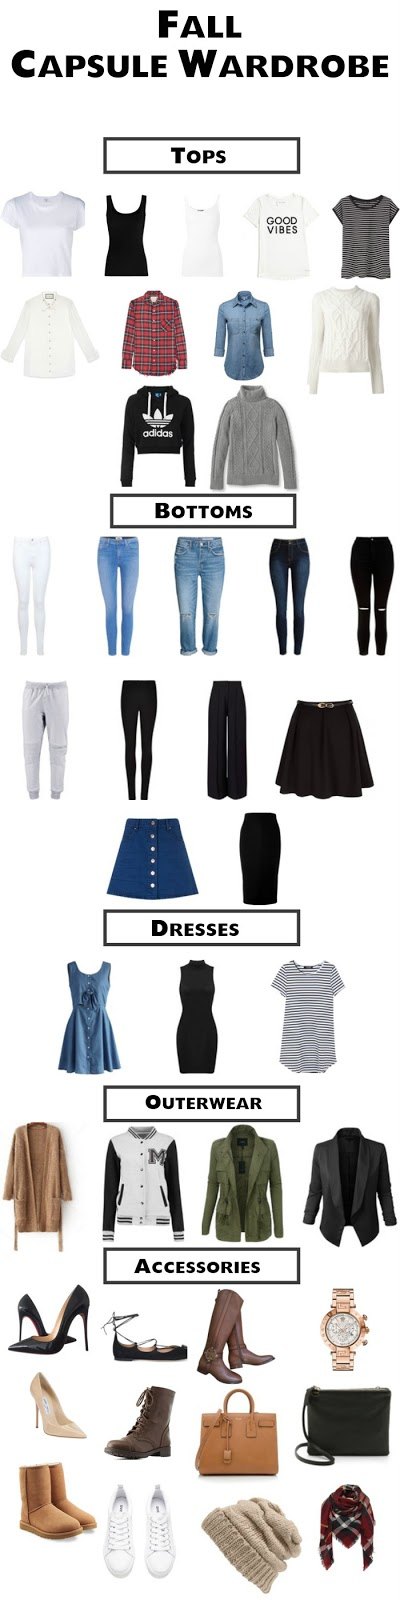 College_Capsule_Wardrobe_Fall